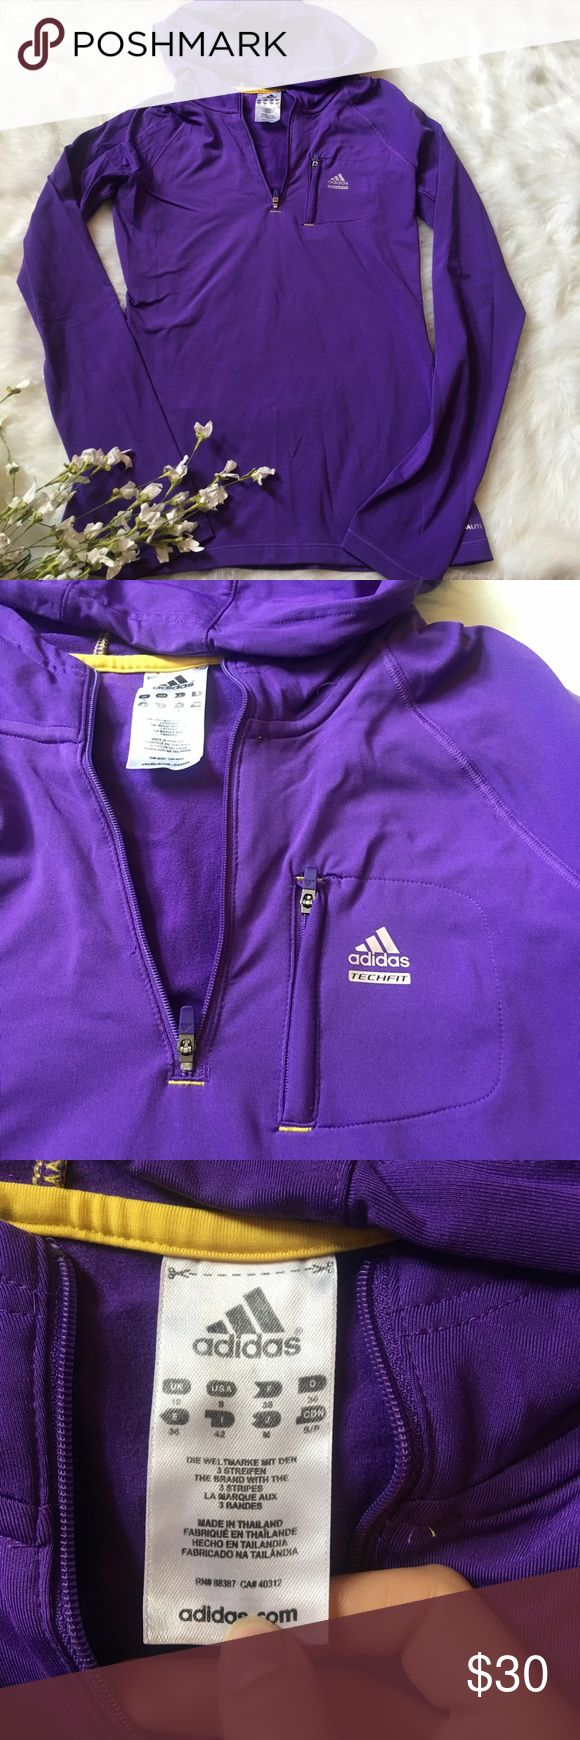 Adidas Purple Pullover Zip up hoodie No tears, rips,or holes, perfect condition, 20% off bundles, open to offer adidas Tops Sweatshirts & Hoodies